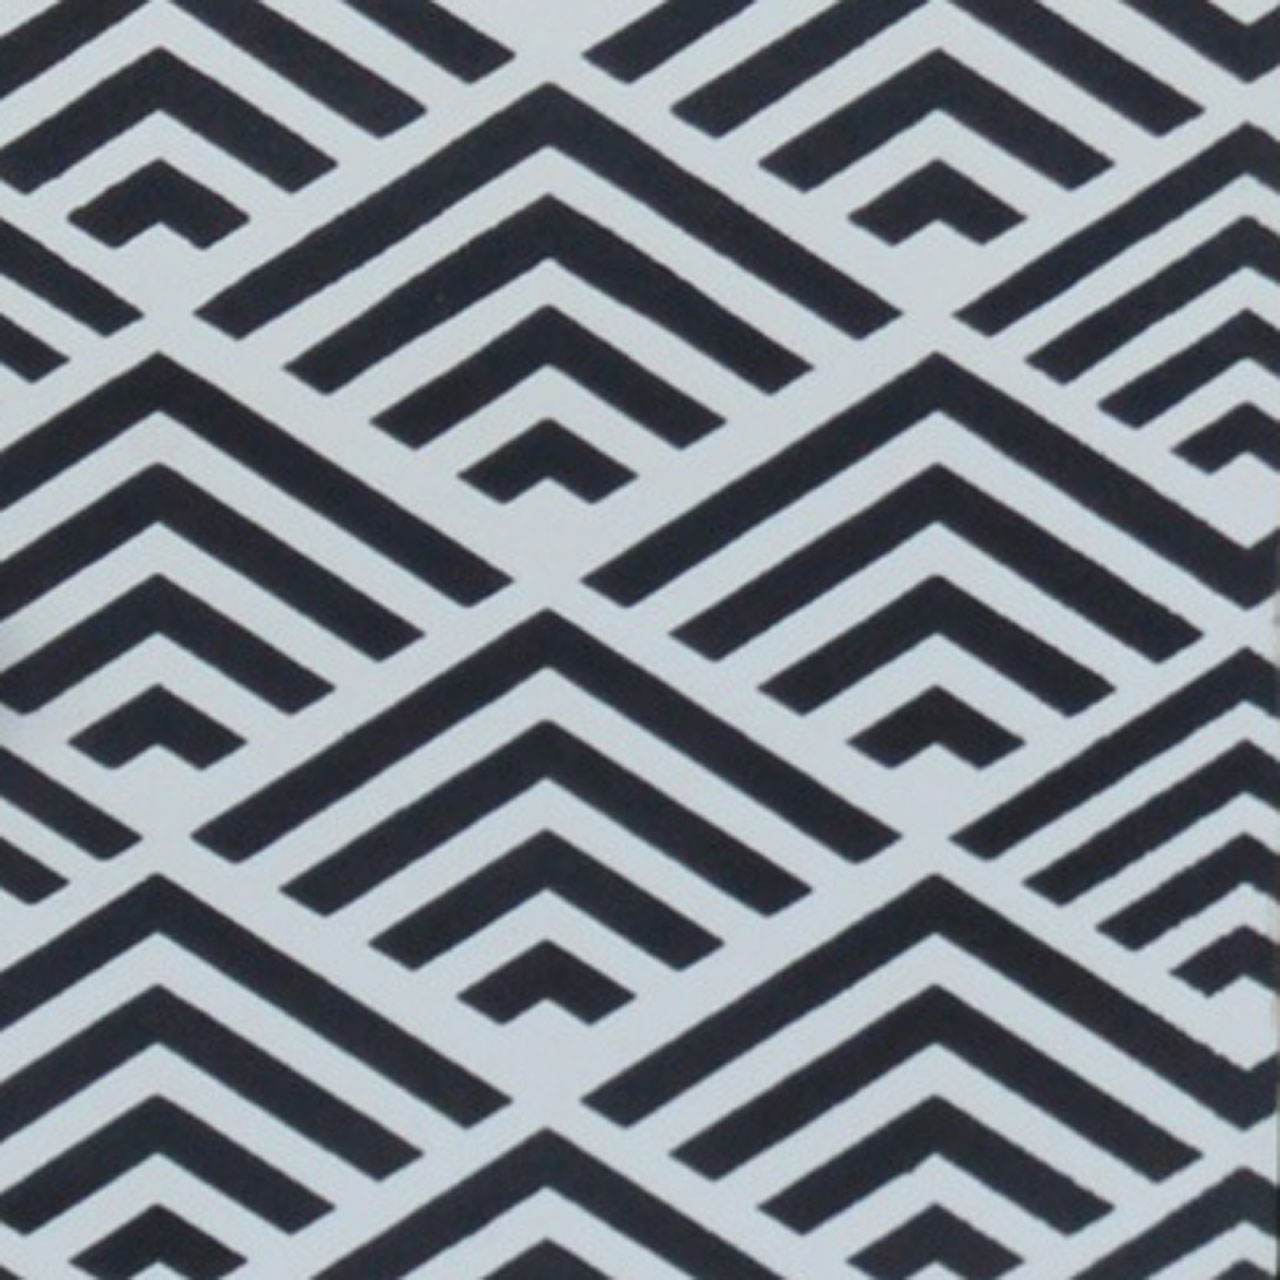 MONOCHROME SCREEN PRINT PATTERN